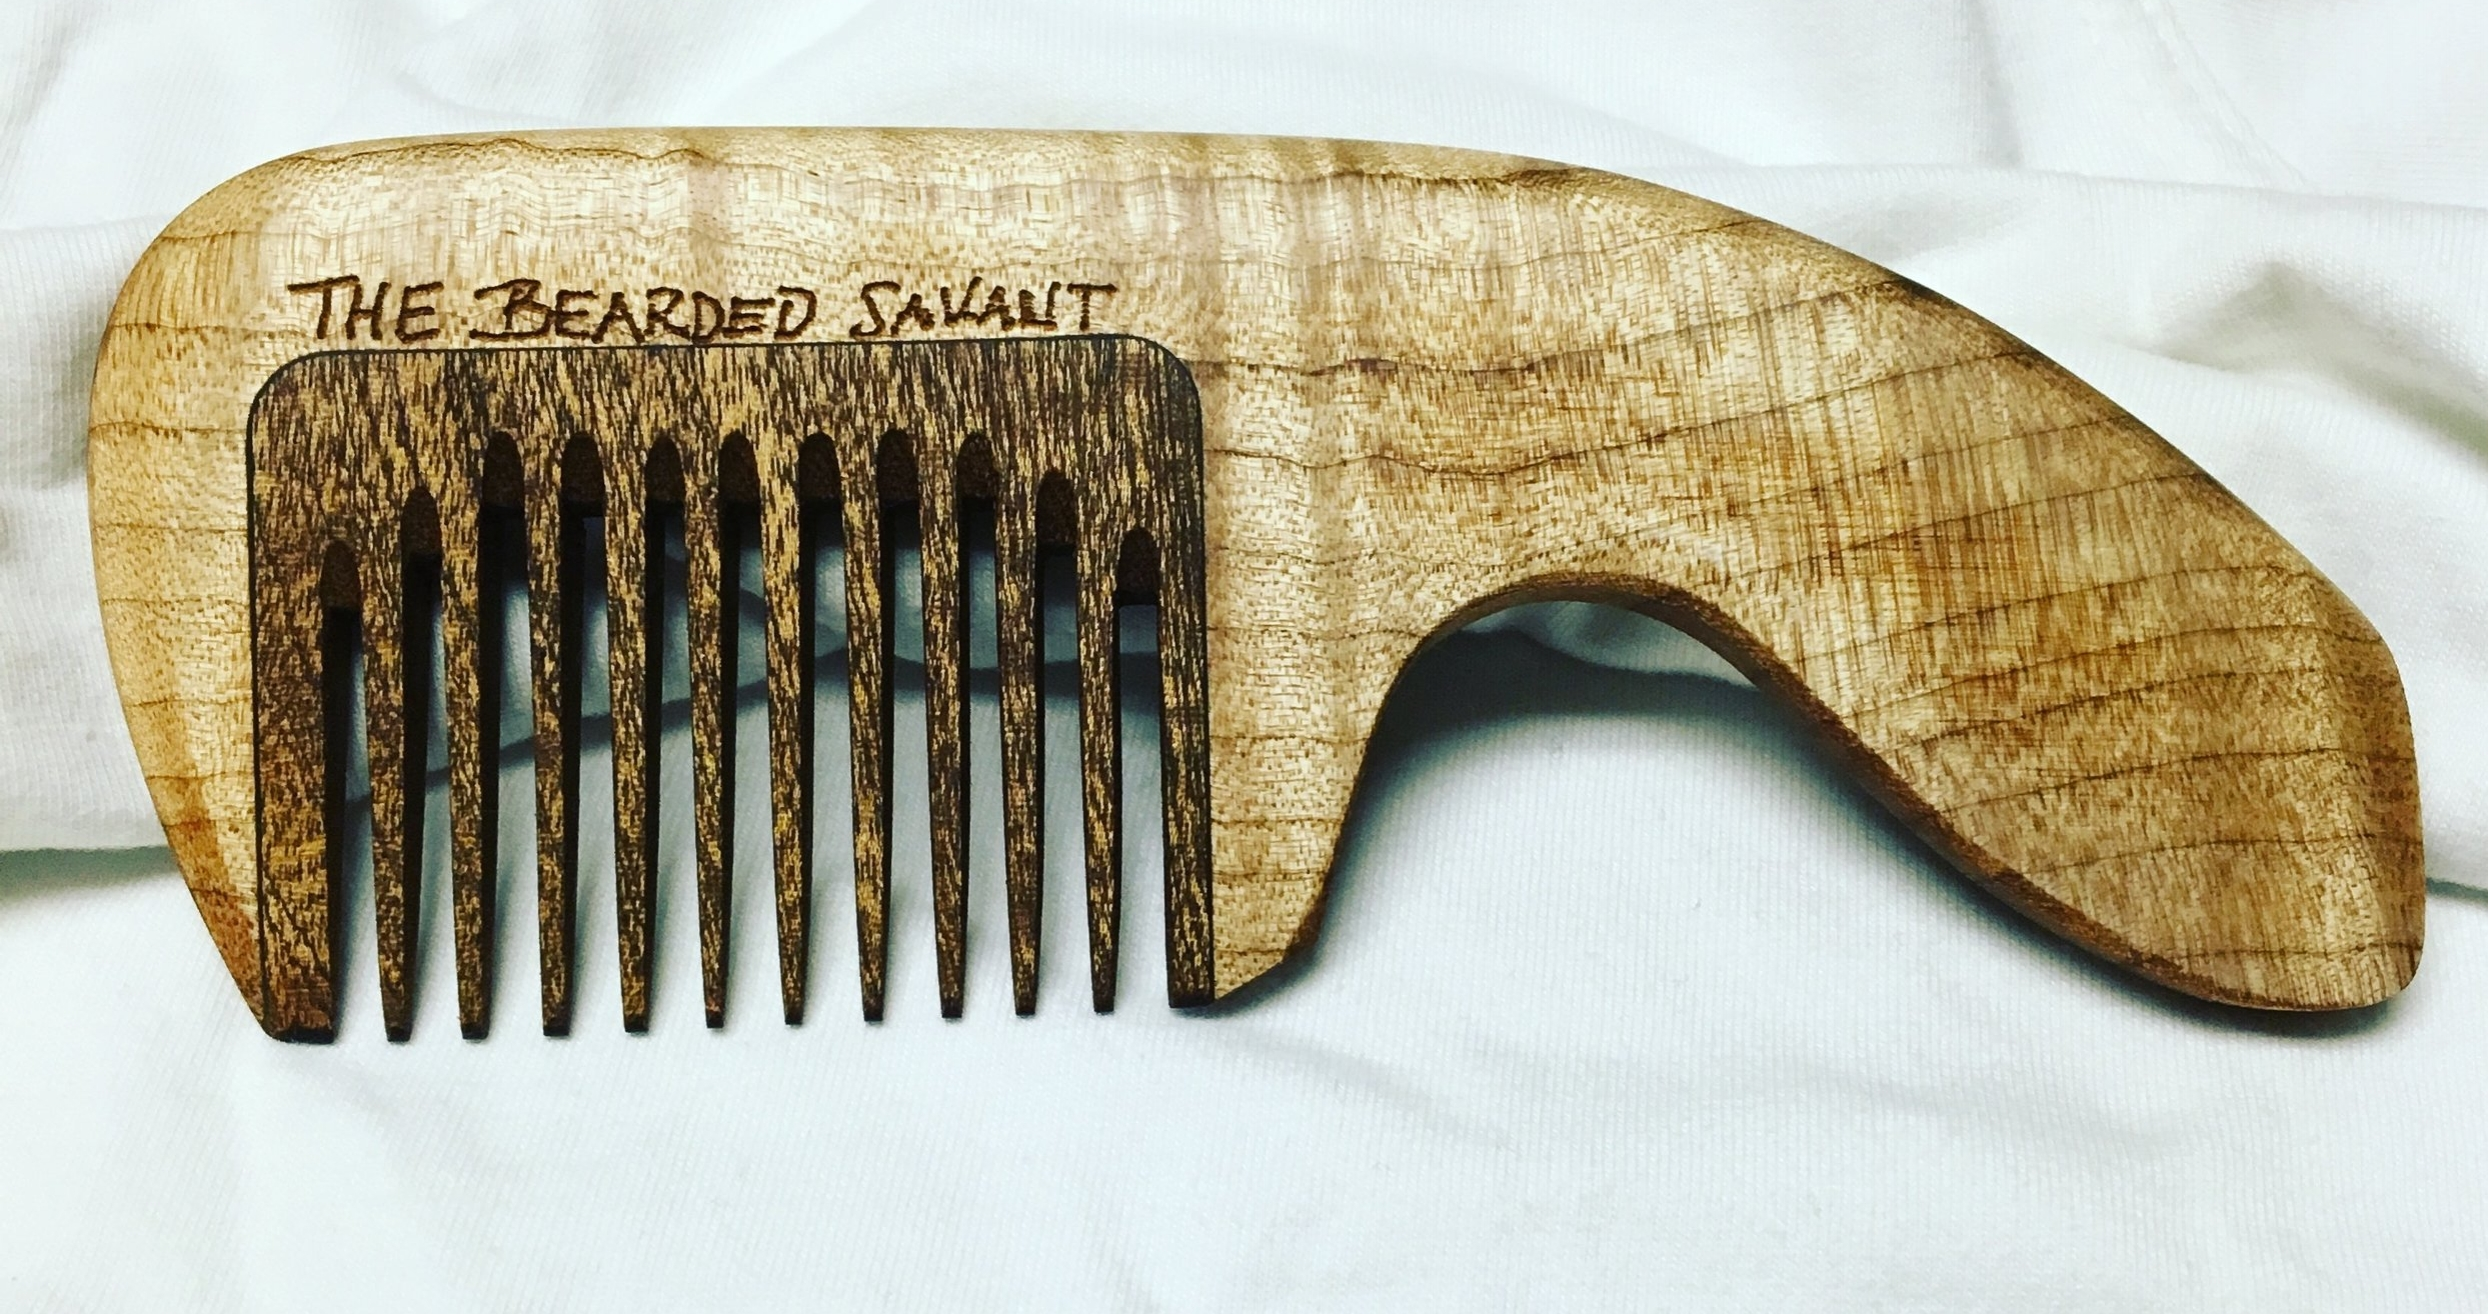 Tiger maple inlaid with sapele. Note the direction of the grain: along the long axis in the handle and along the teeth in the inlay, this provides provides maximum strength in the direction of greatest stress.